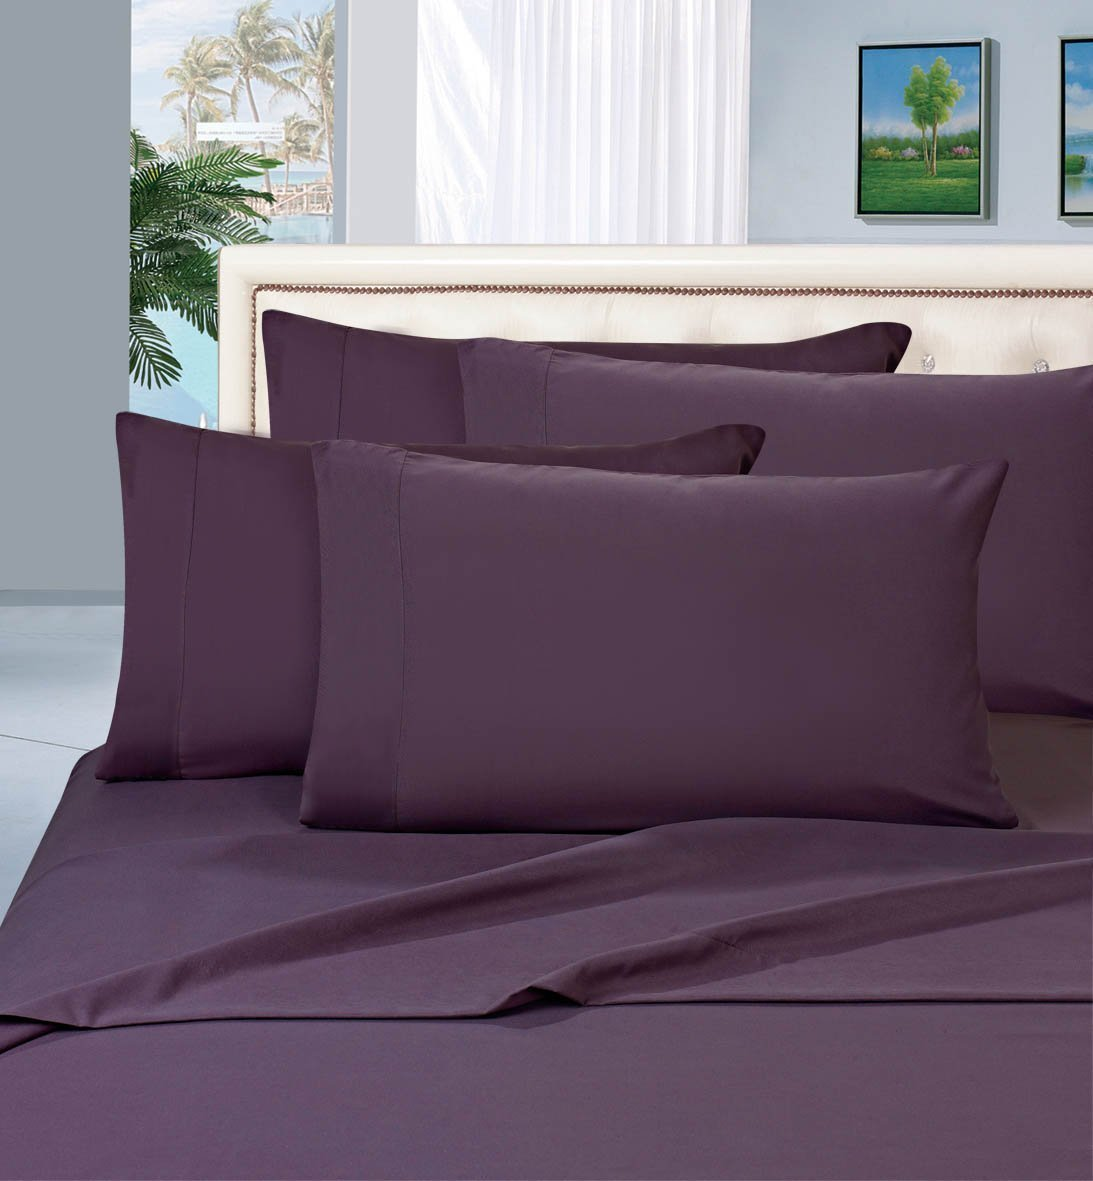 4-Piece Bed Sheet set, Deep Pocket, HypoAllergenic - Full Purple